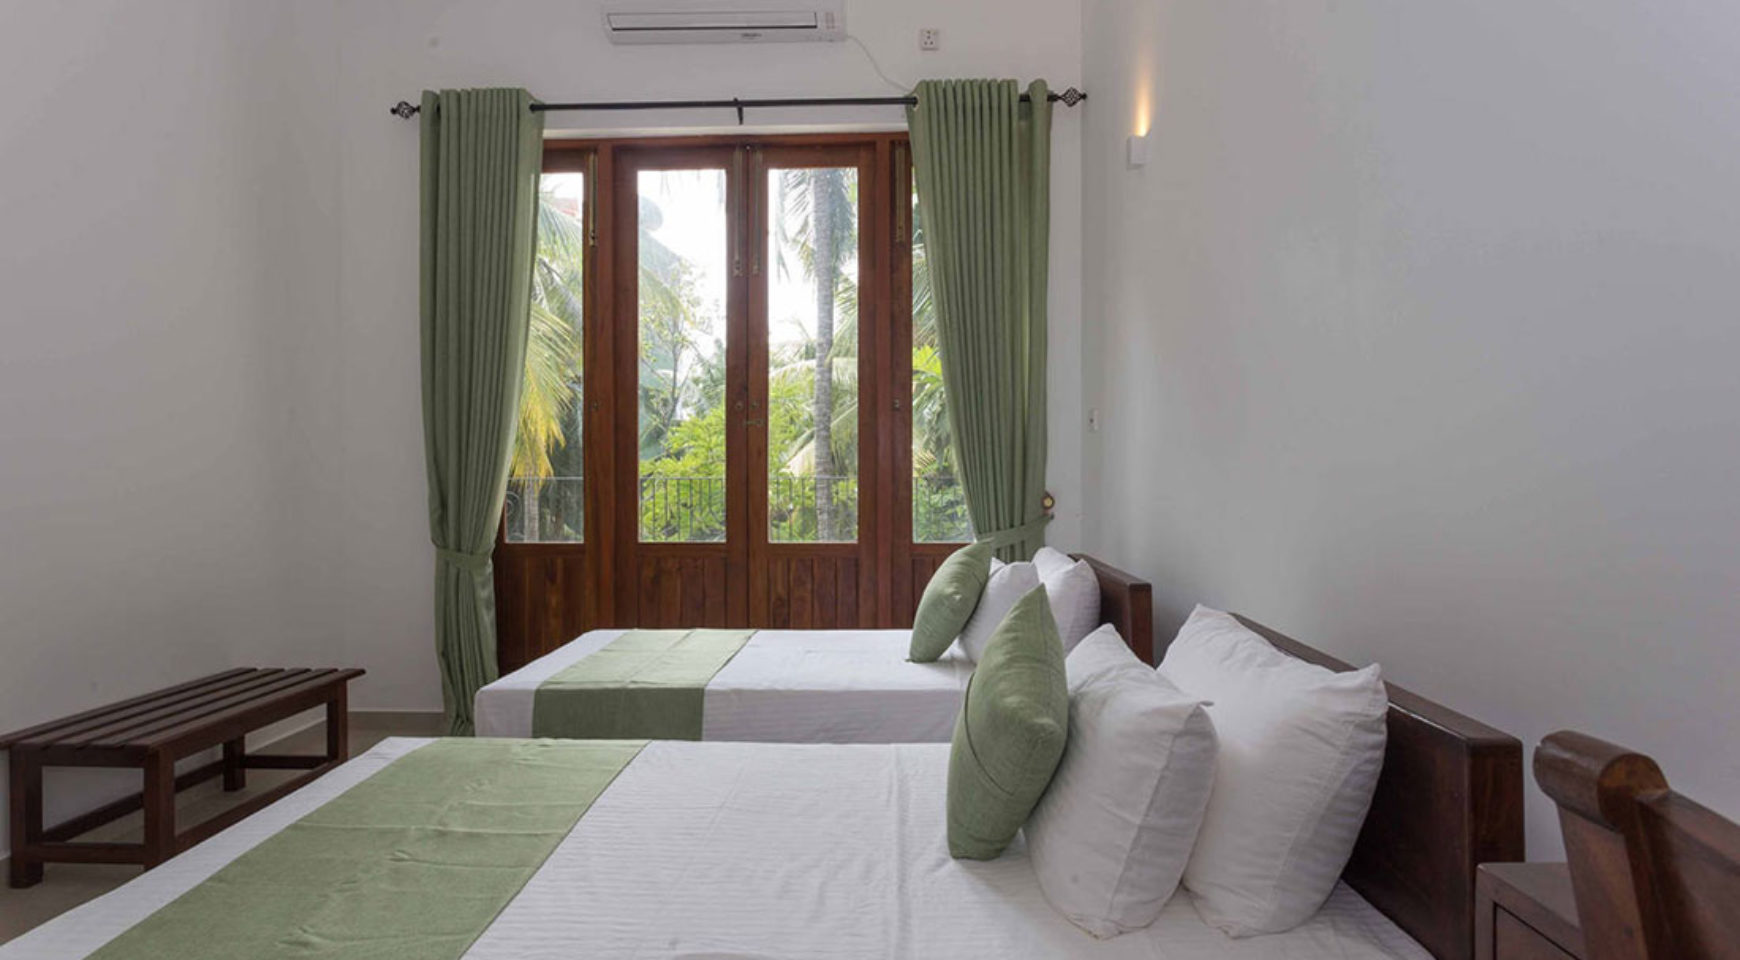 100 1 bedroom house for rent apartments for rent in for 6 bedroom house for rent near me